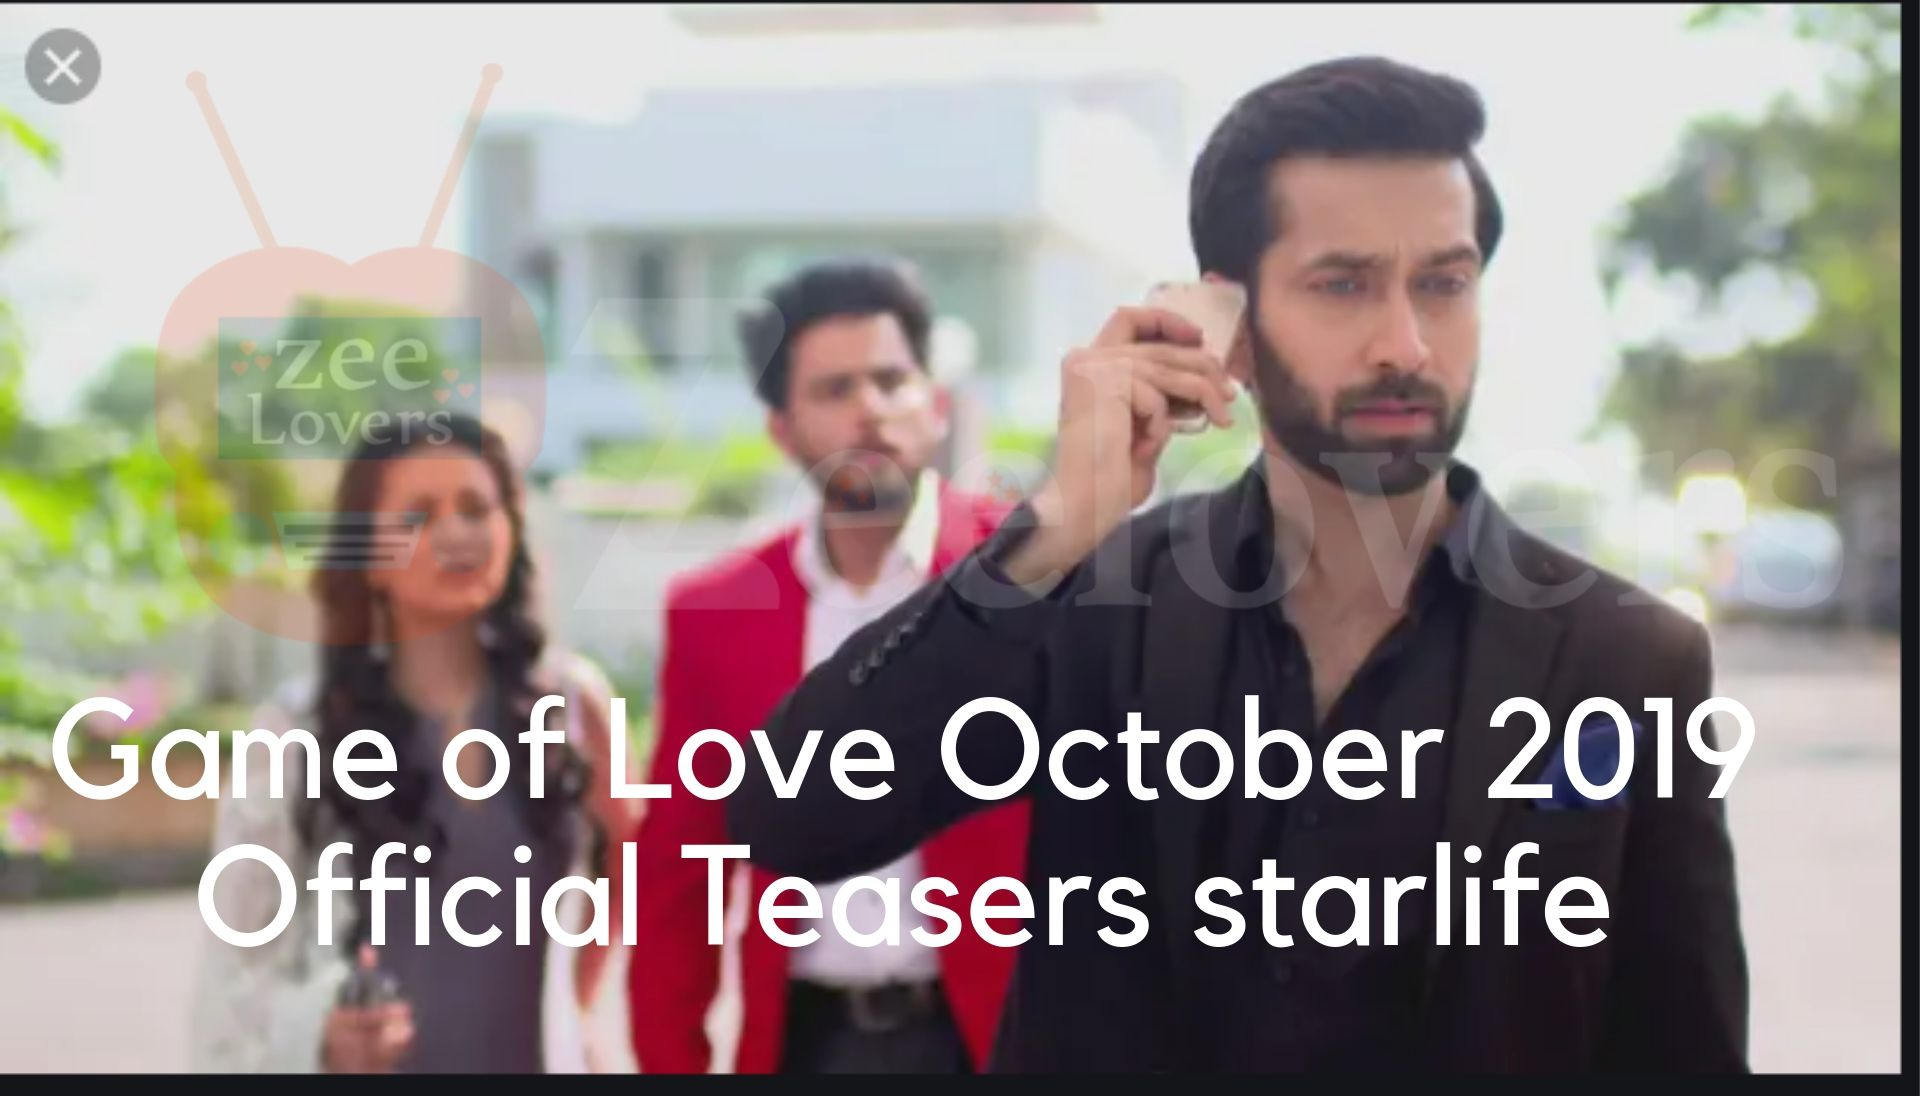 Game of Love October 2019 Official Teasers starlife